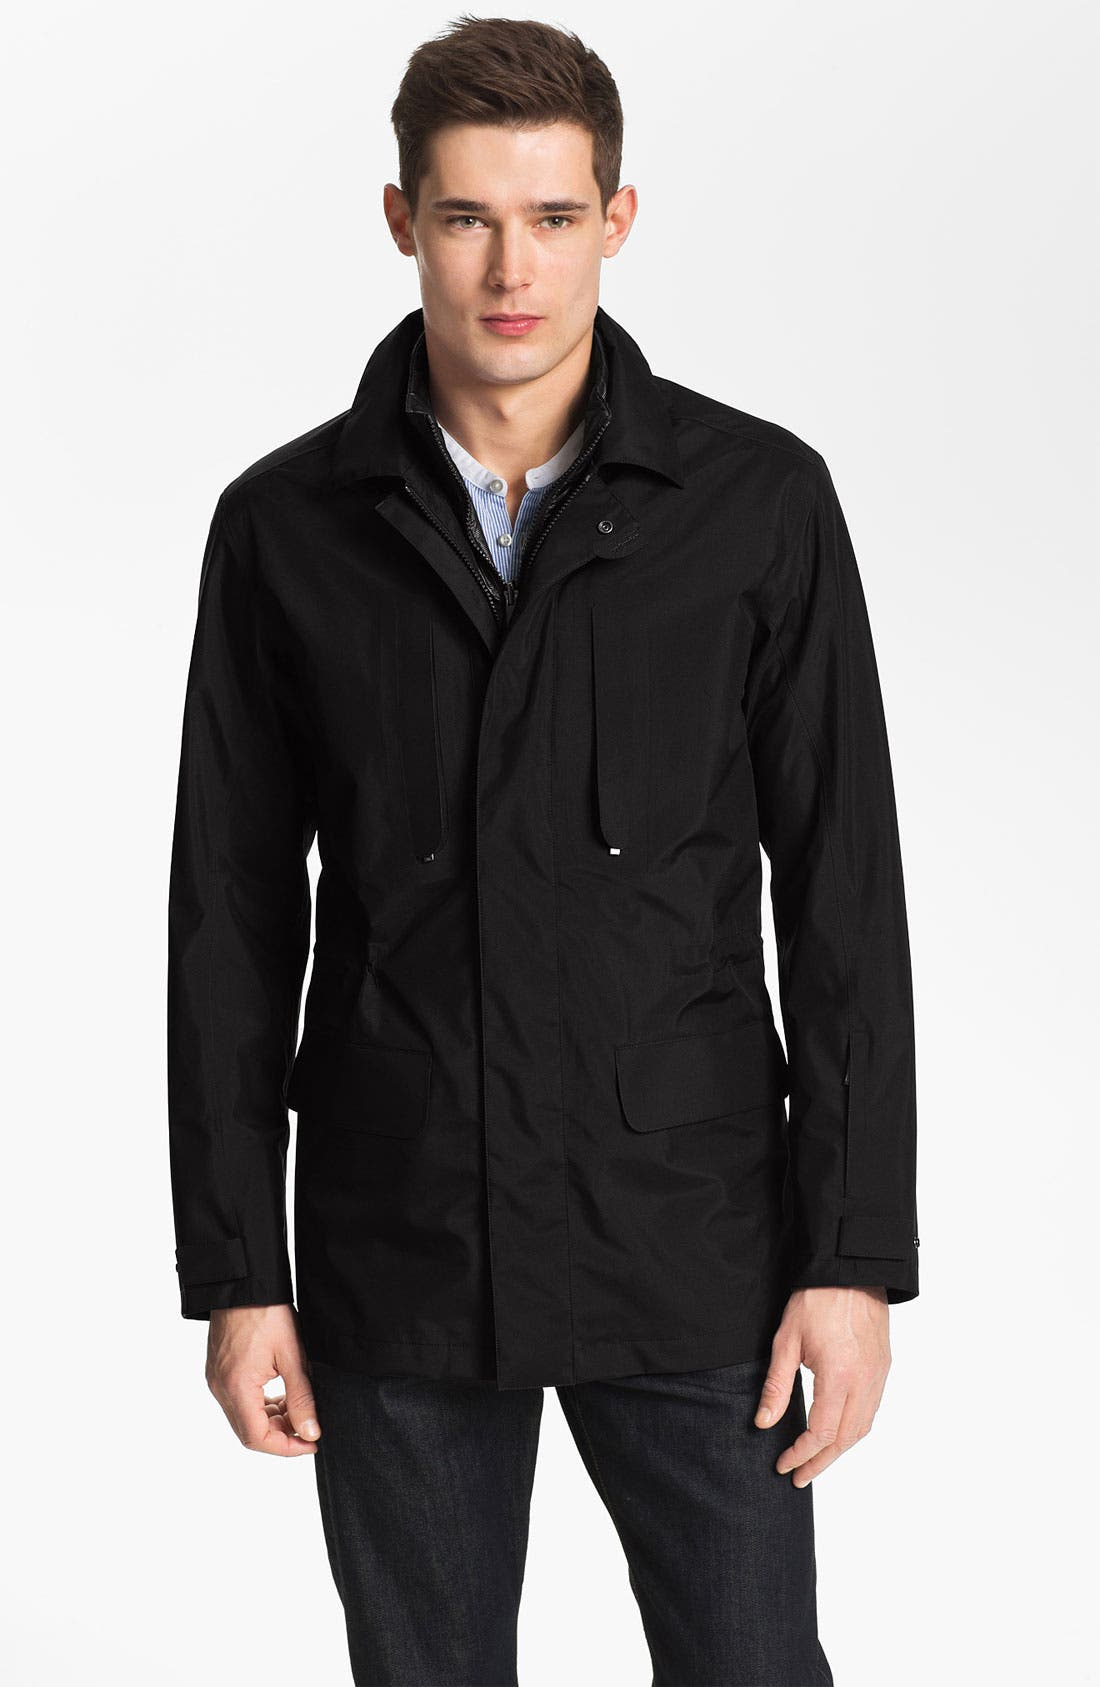 Alternate Image 1 Selected - Zegna Sport Blazer Style Field Jacket with Removable Zip Vest